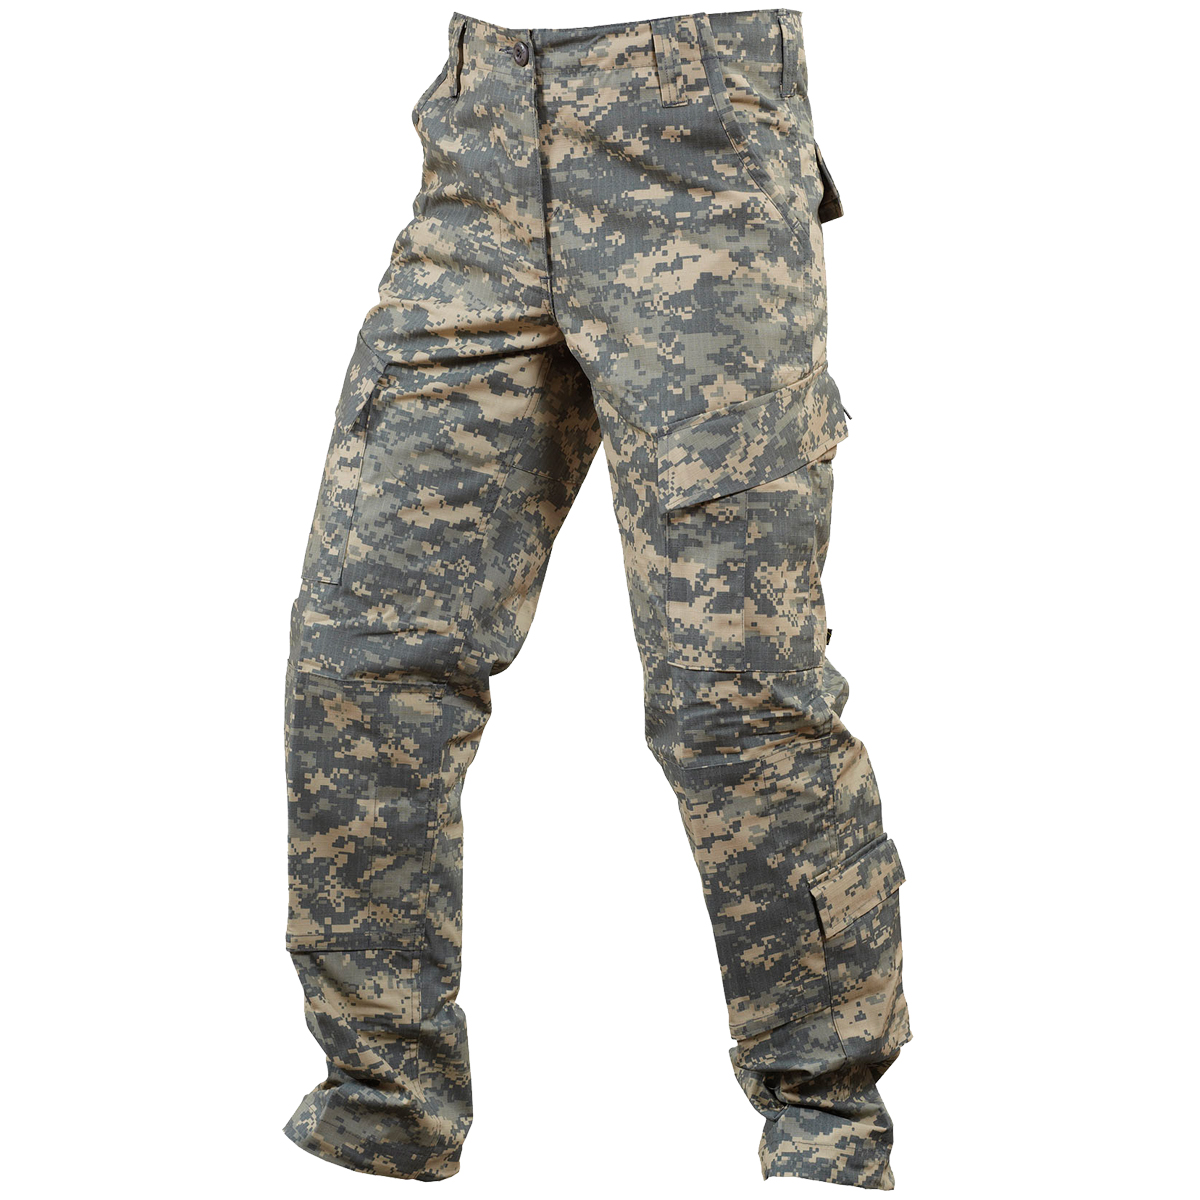 G3 Combat Pant™ Designed as a no-compromise assault uniform, these pants are aggressively cut for maximum mobility. These combat-proven pants are sized in 2